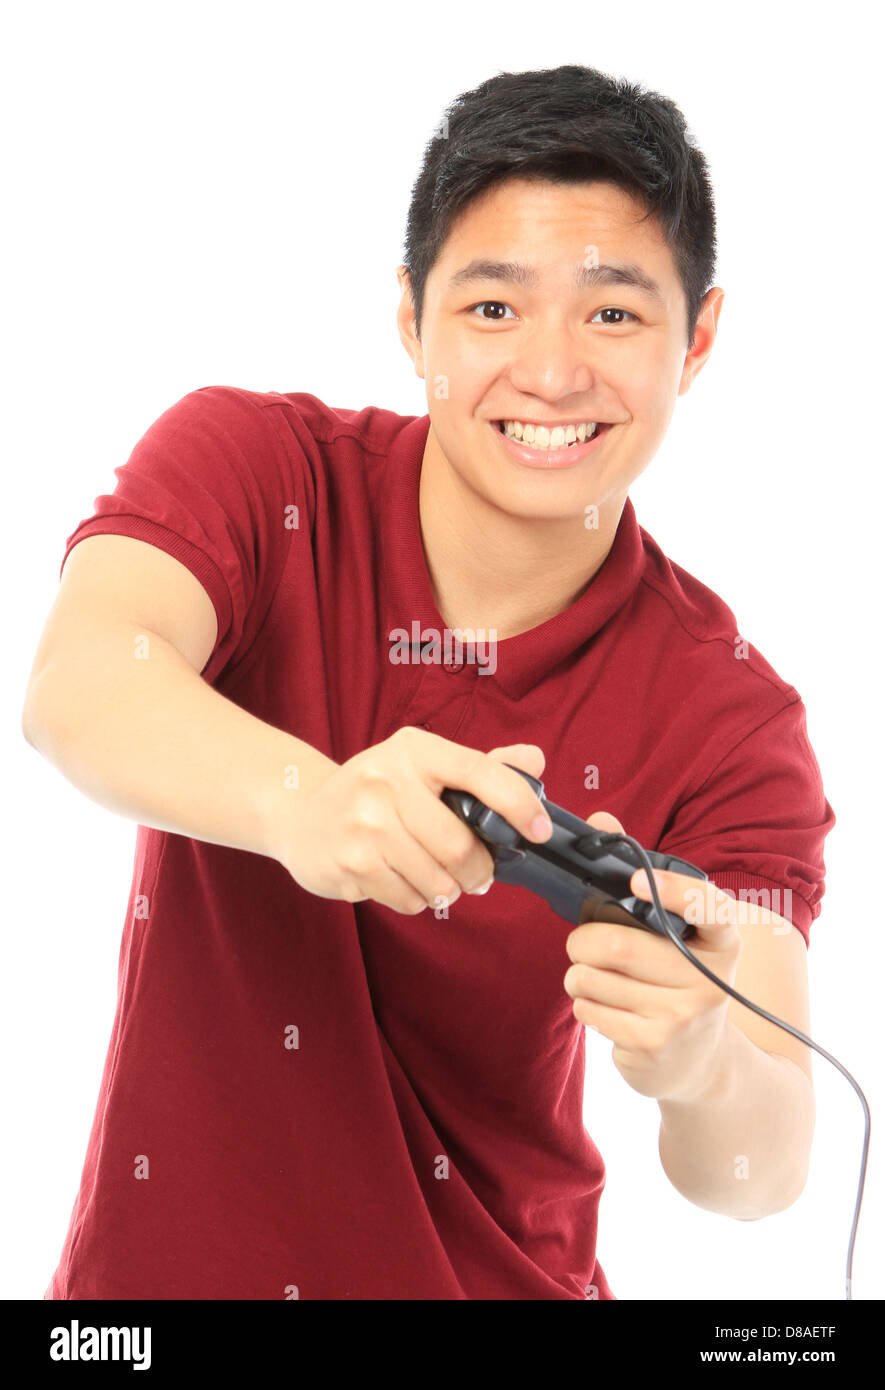 A teenager holding a game controller - Stock Image